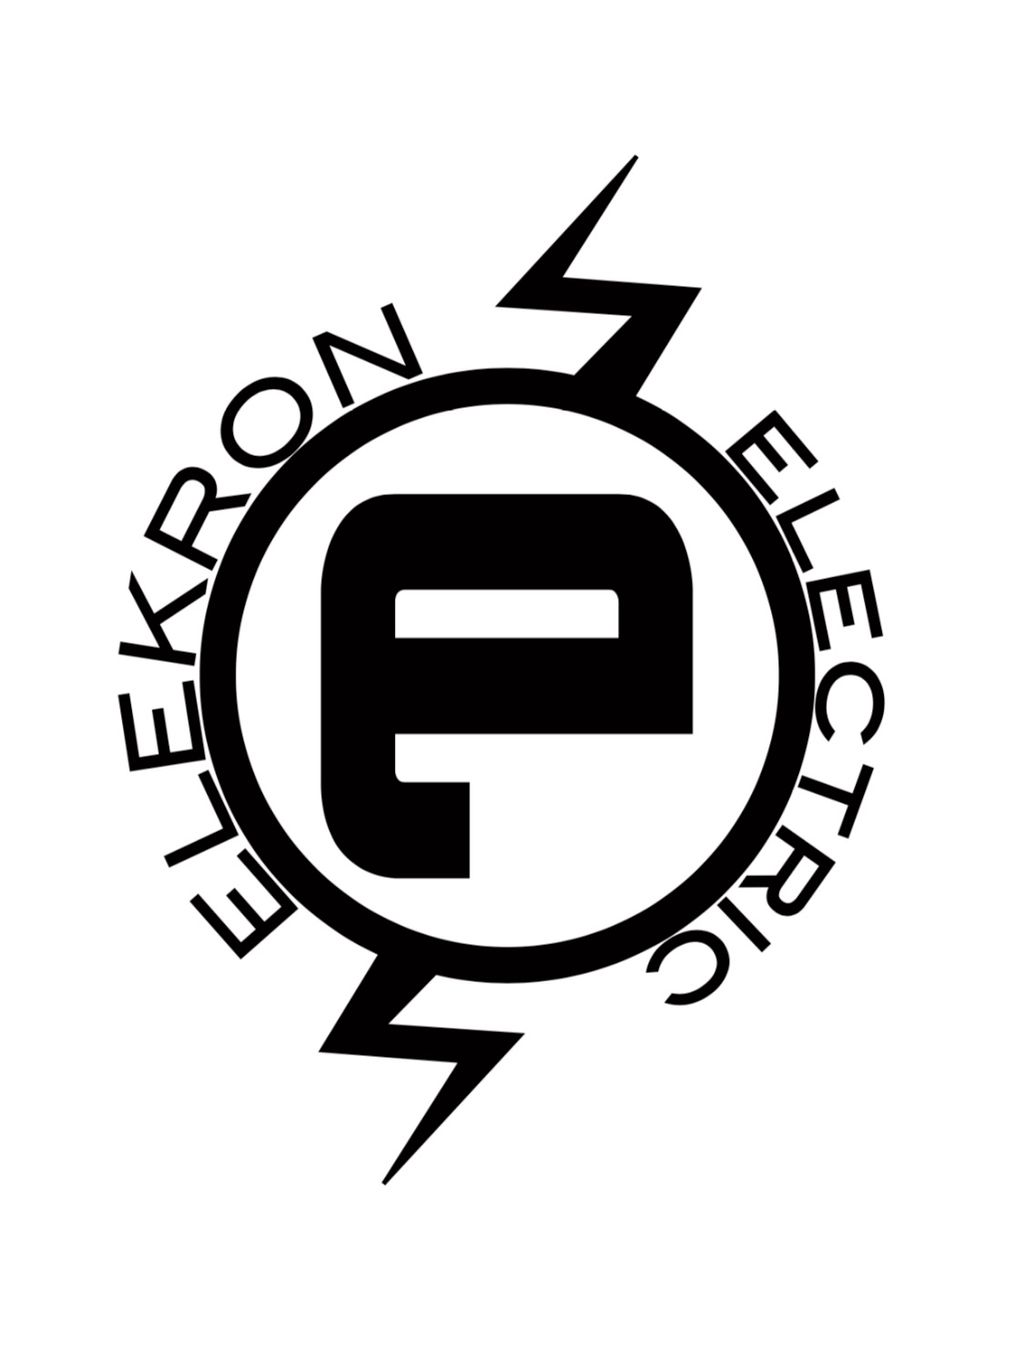 Elekron Electric Inc.